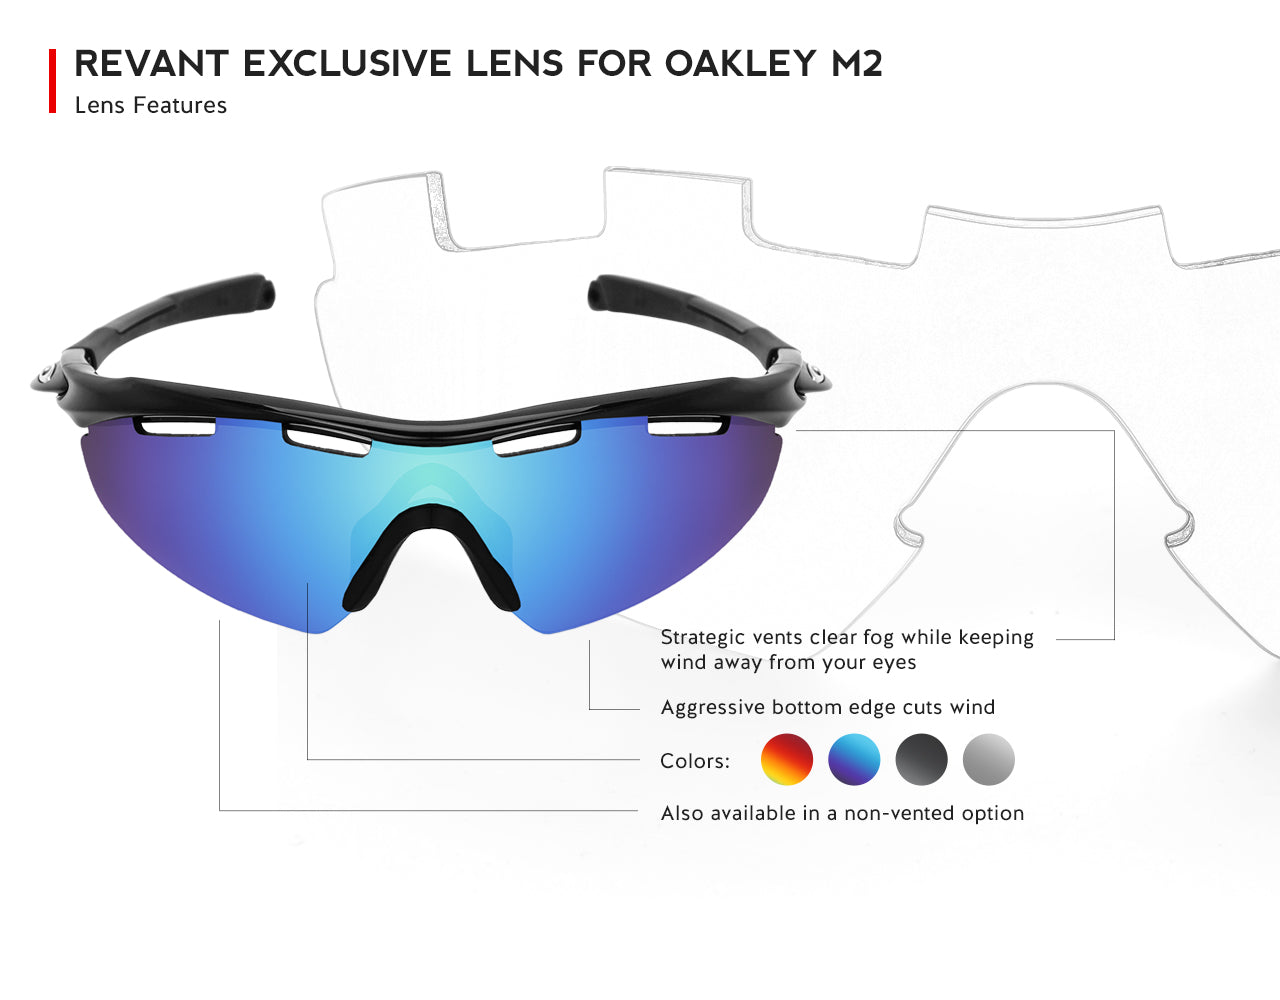 revant exclusive lens for oakley m2